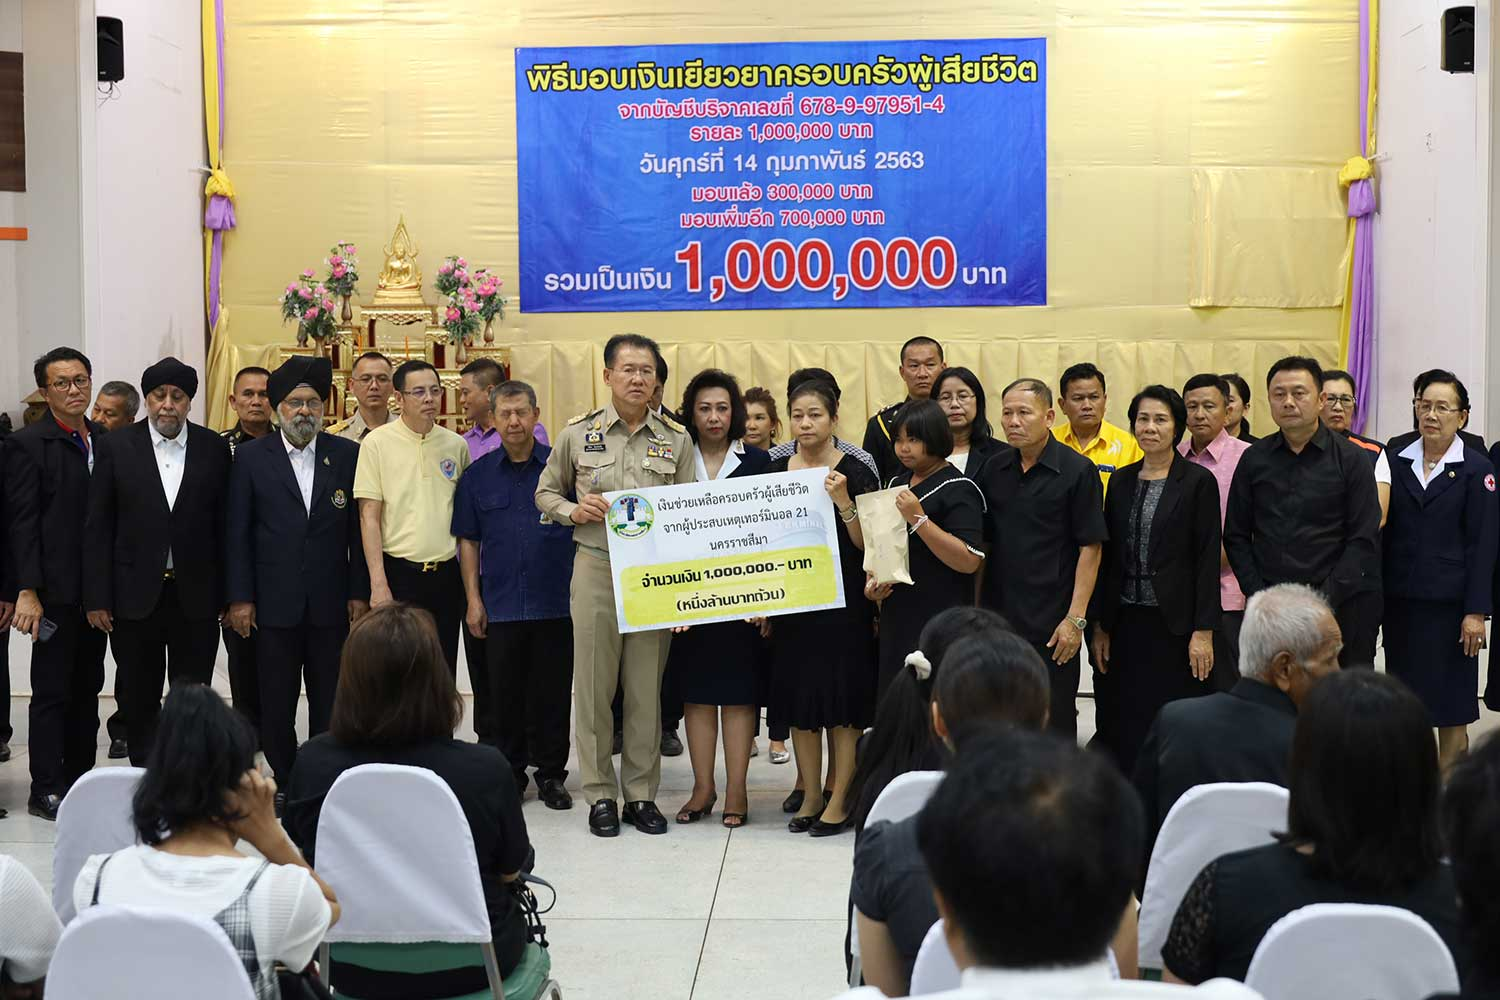 Nakhon Ratchasima governor Wichian Chantharanothai hands over money raised by public donation to the 26 families of 27 victims of the shooting rampage last weekend. Each family has now received one million baht. Total donations have topped 68 million baht and the fund will be closed on Sunday afternoon. (Photo by Prasit Tangprasert)